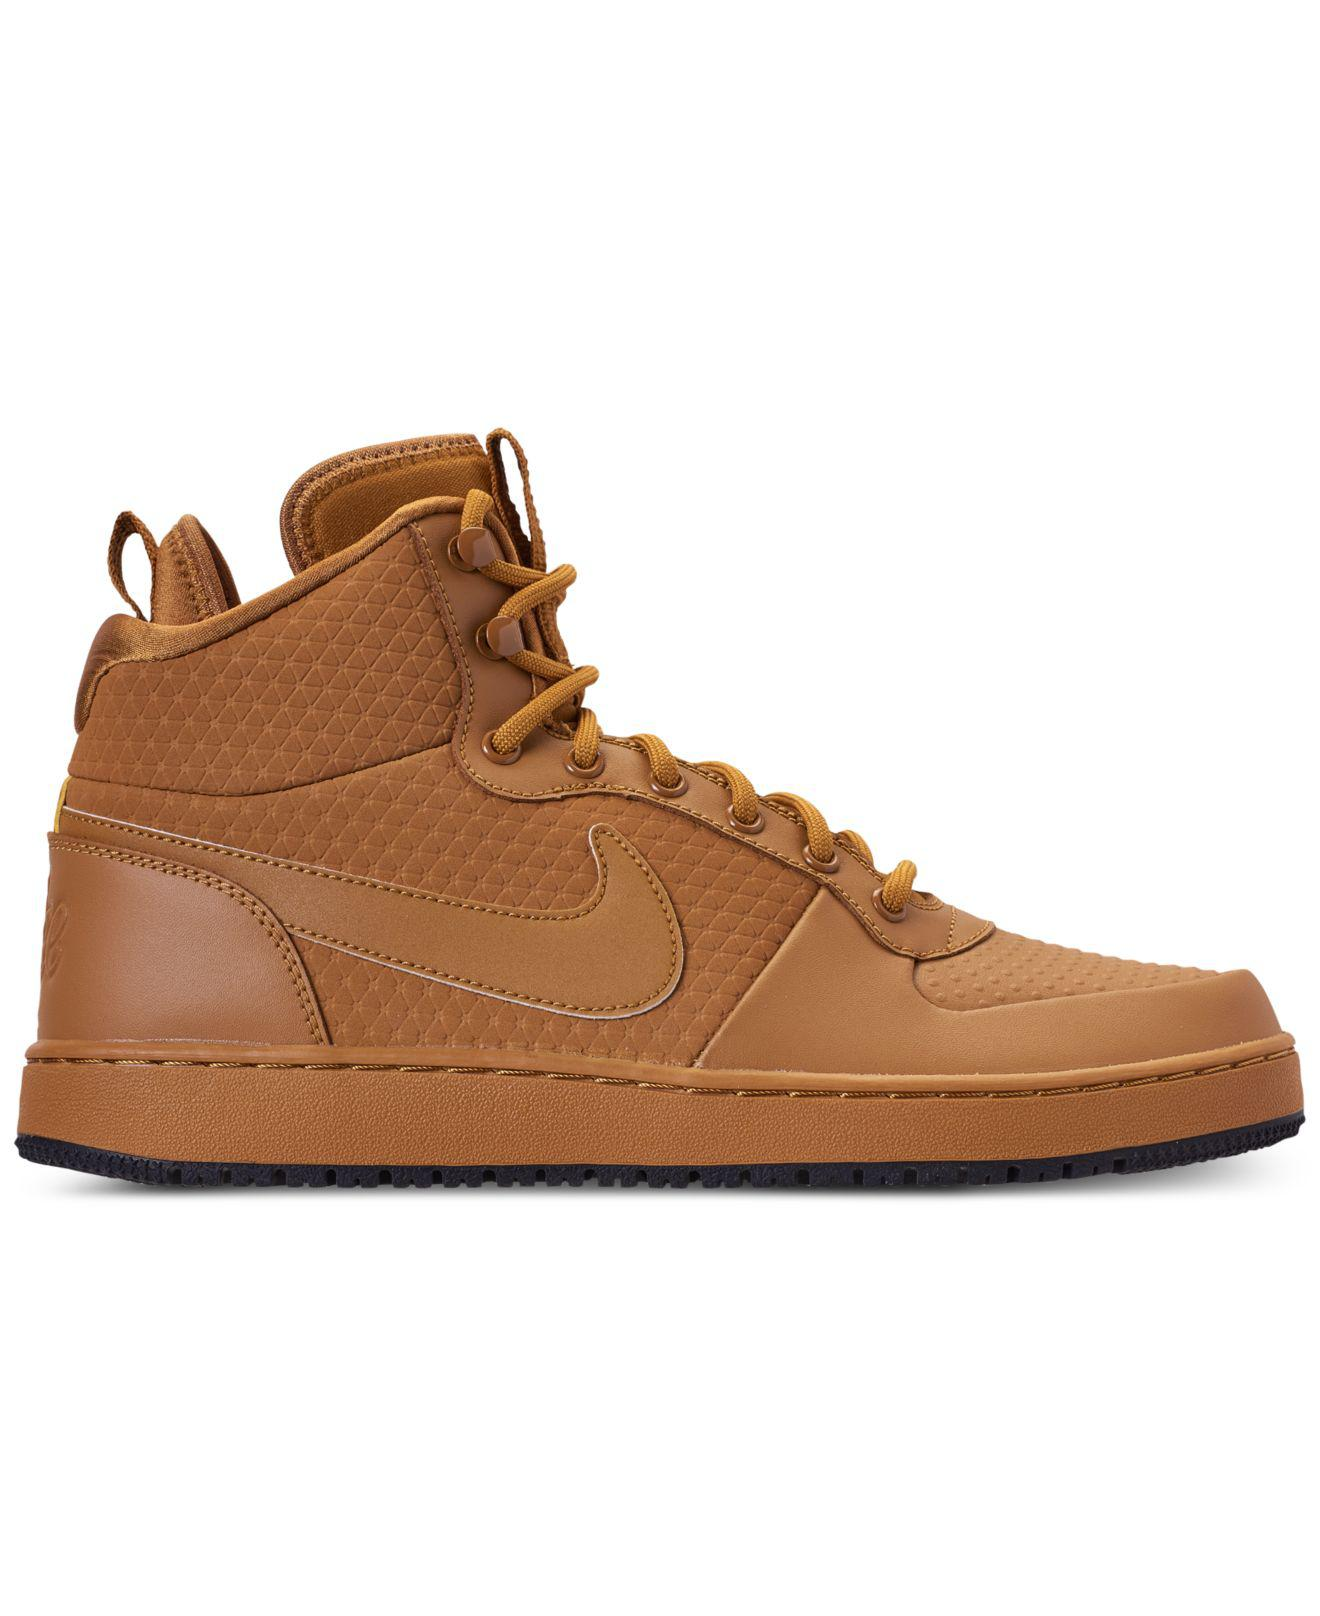 959633b858 Lyst - Nike Ebernon Mid Winter Casual Sneakers From Finish Line in Brown  for Men - Save 16%